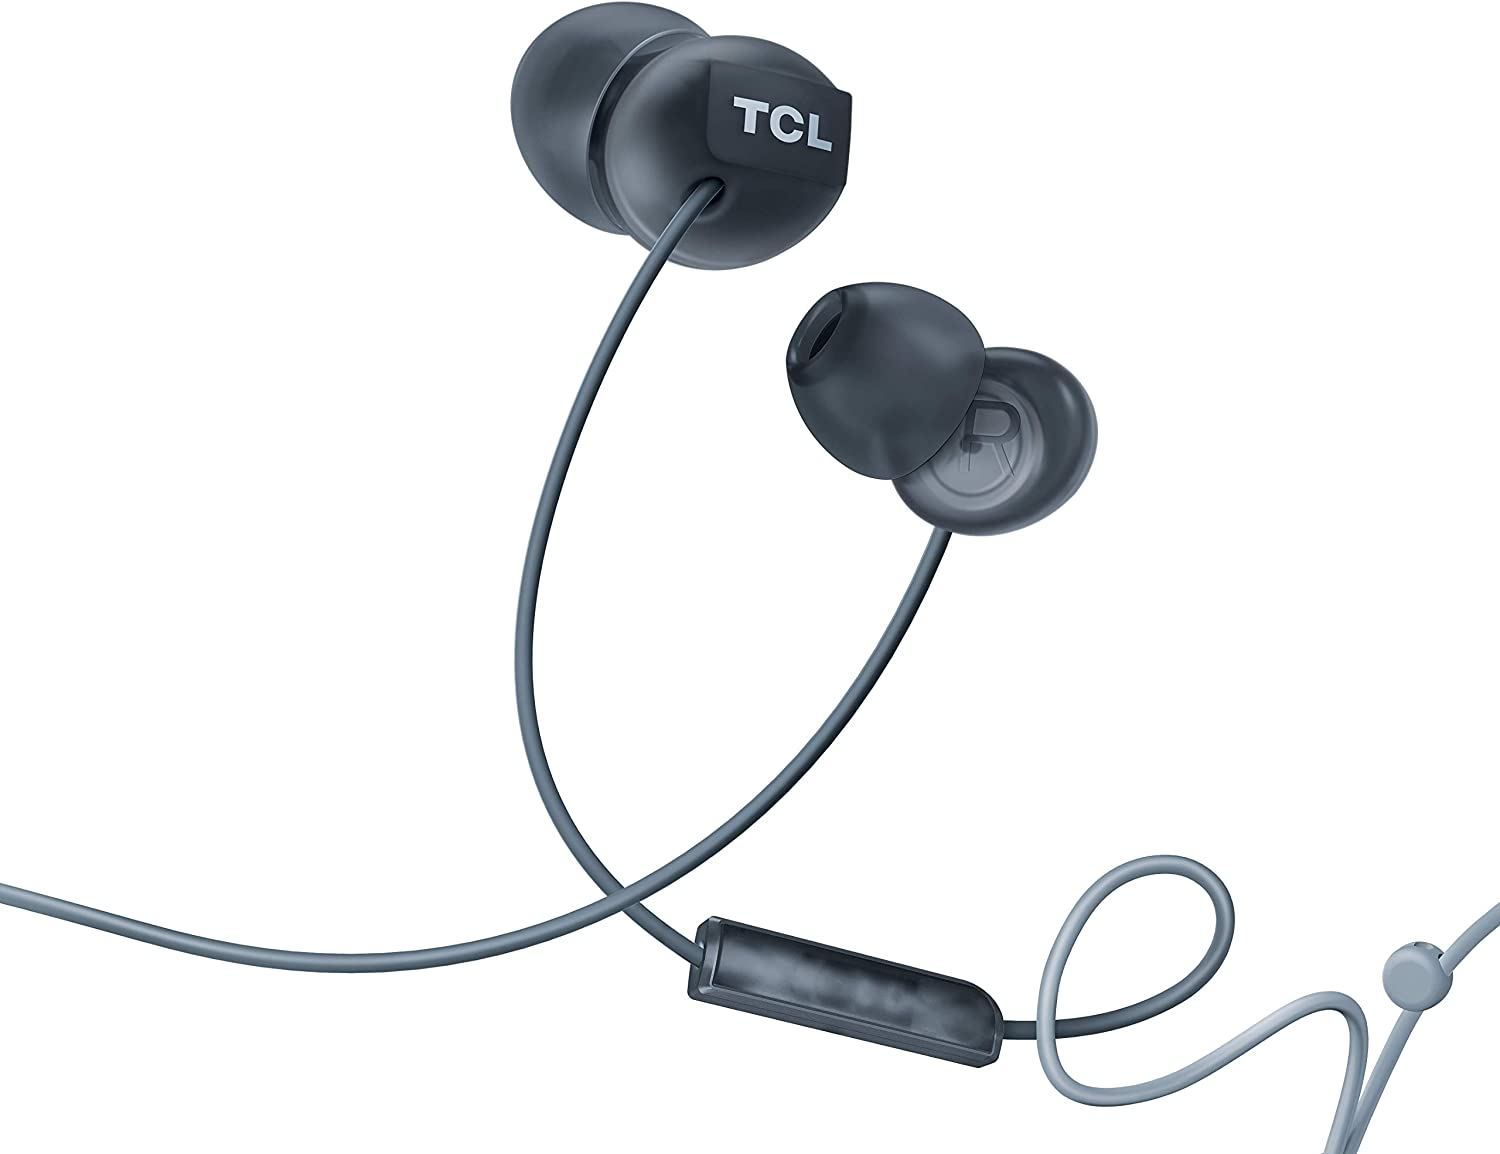 TCL Socl300 in-Ear Earbuds Wired Noise Isolating Headphones with Built-in Mic and Echo Cancellation - Phantom Black